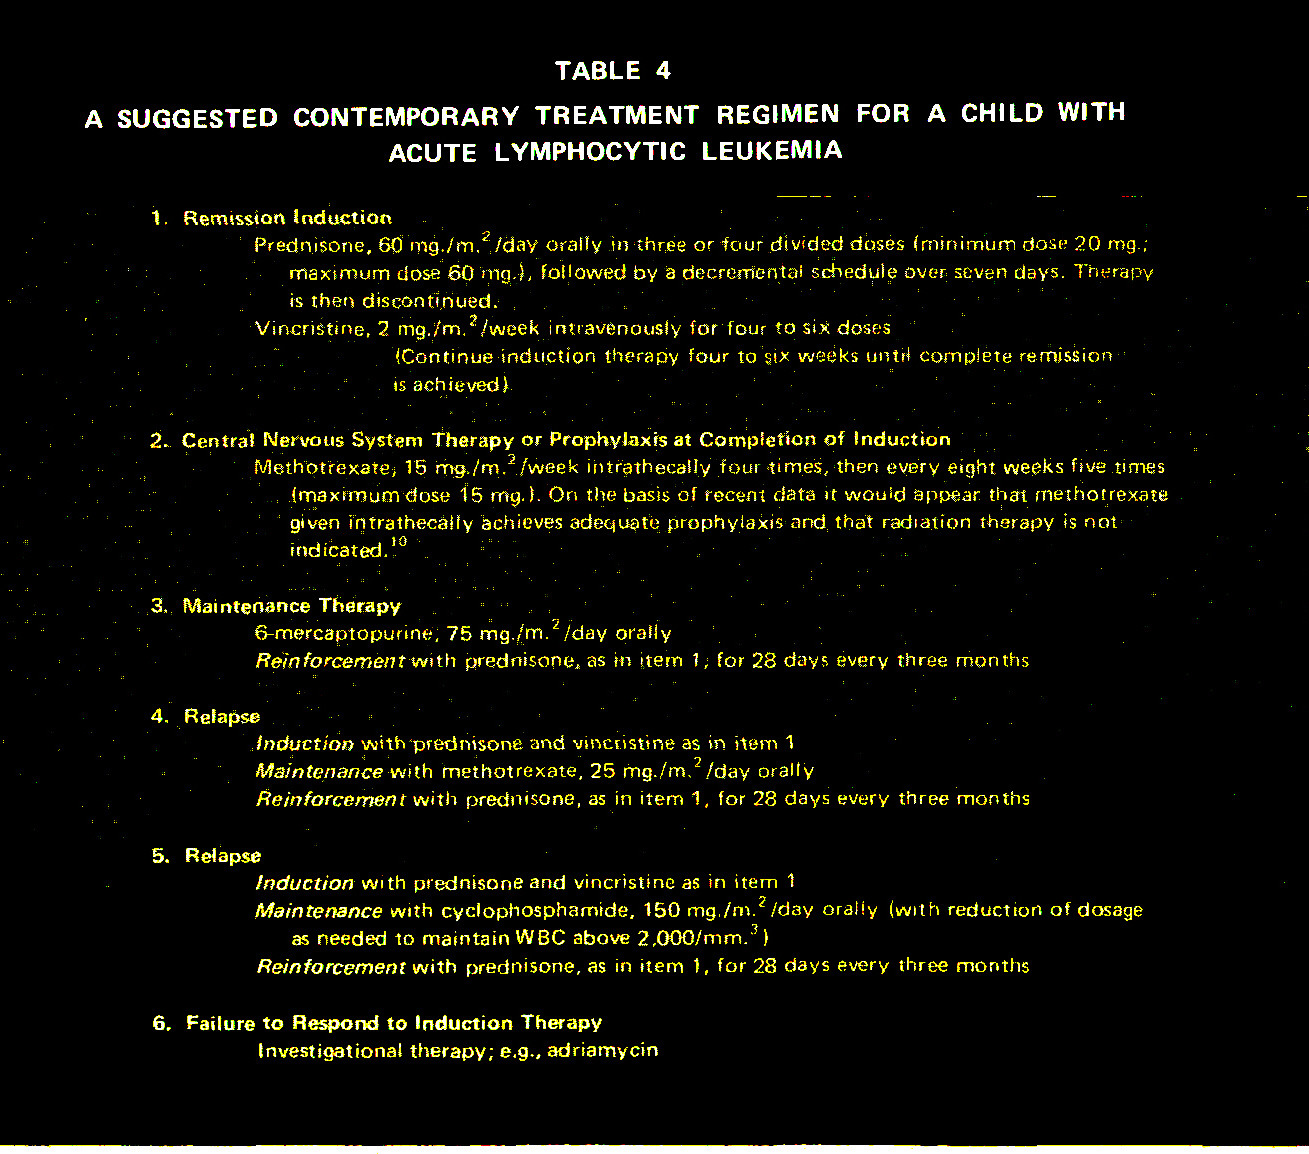 TABLE 4A SUGGESTED CONTEMPORARY TREATMENT REGIMEN FOR A CHILD WITH ACUTE LYMPHOCYTIC LEUKEMIA